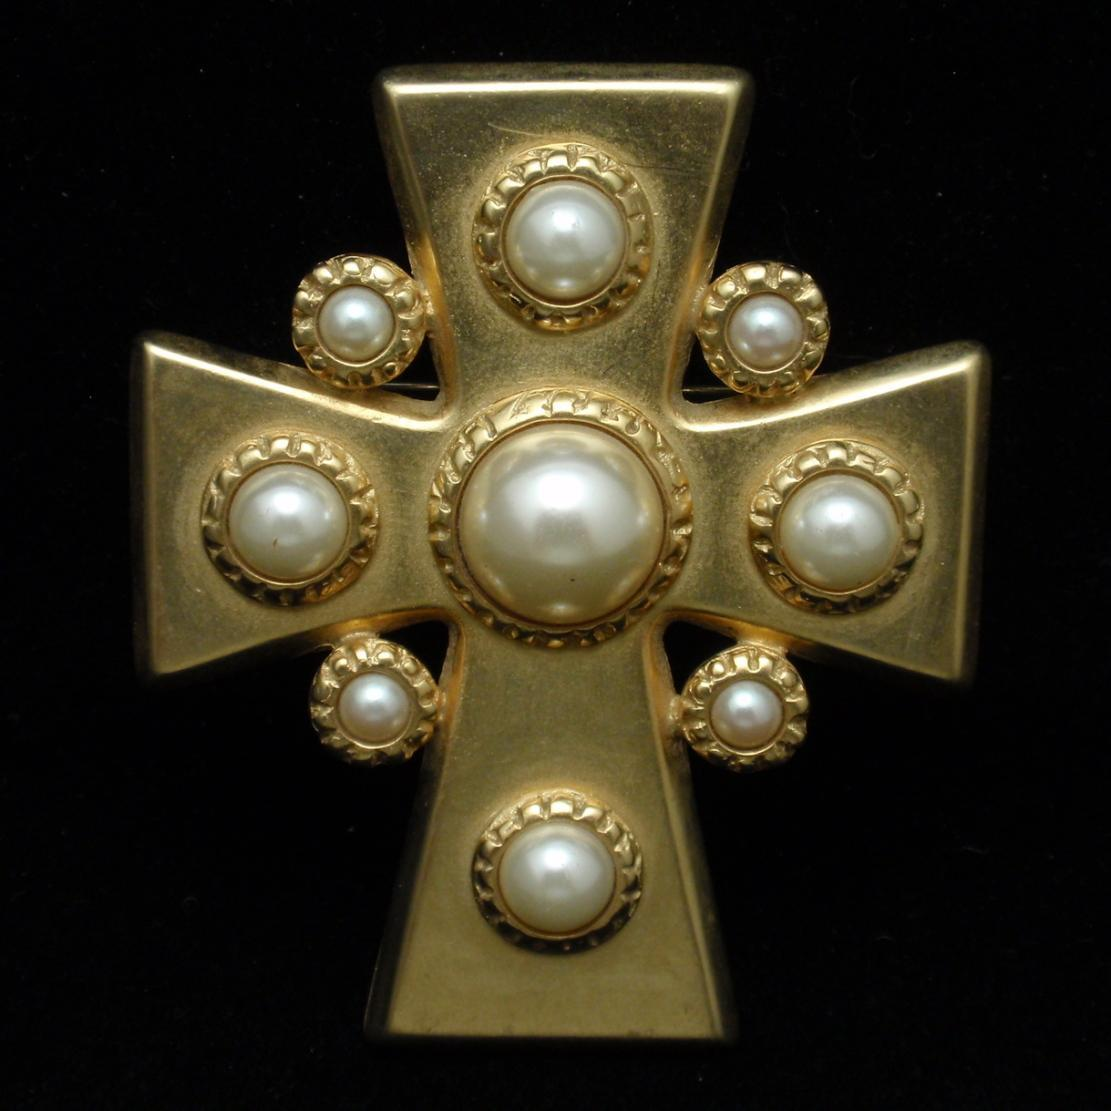 Cross Pin Pendant Erwin Pearl Vintage Gold Tone Metal Imitation Pearls